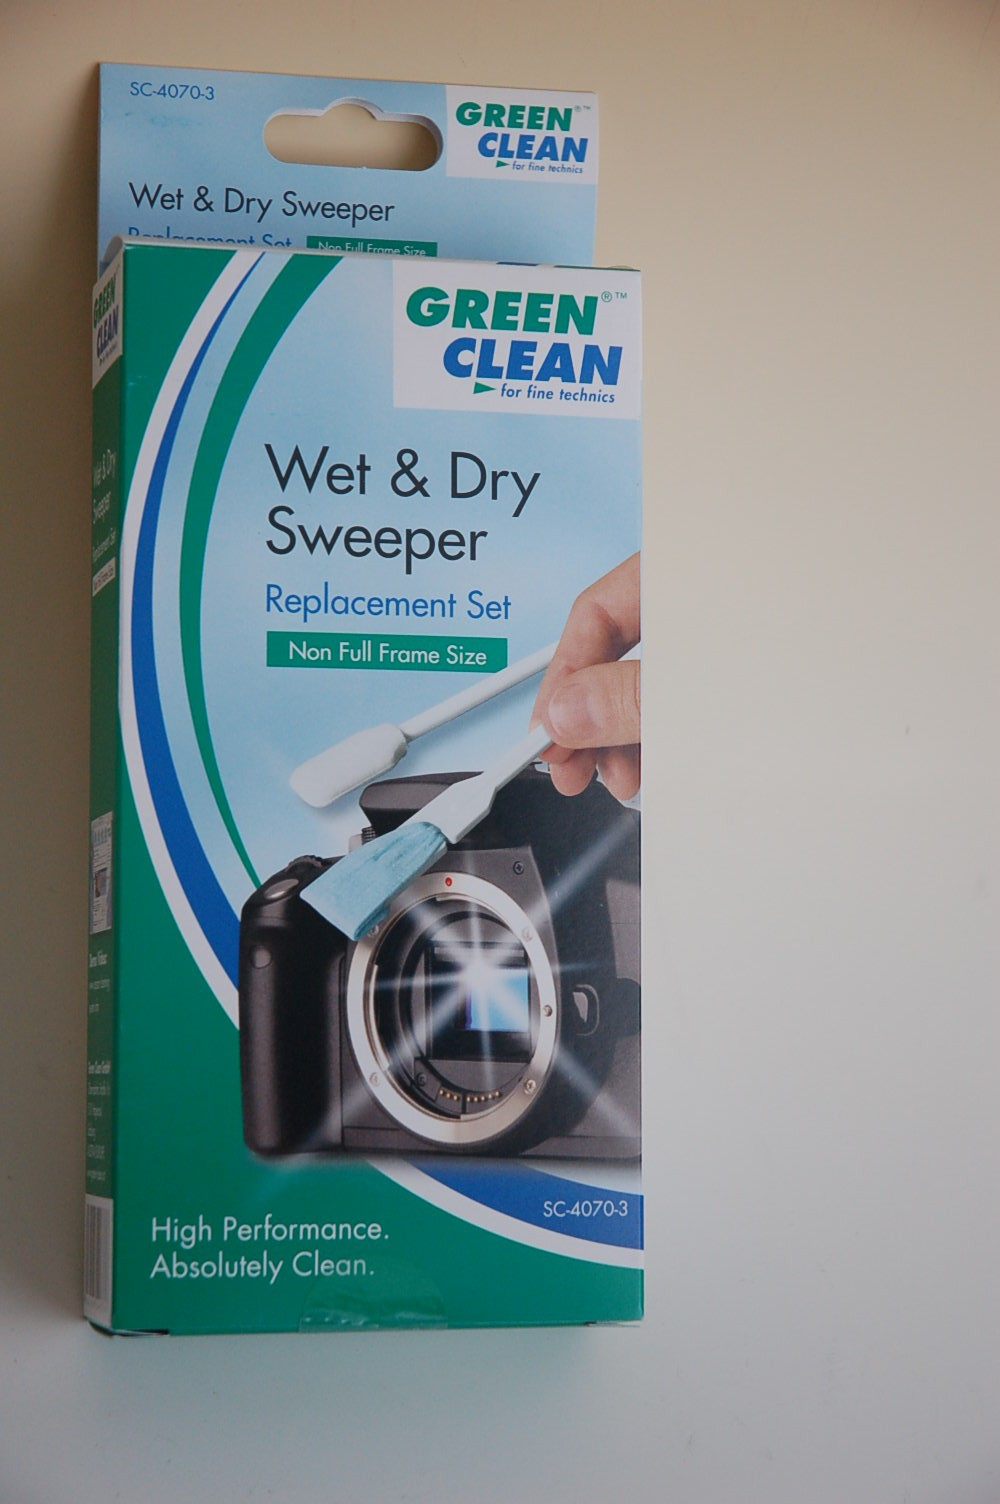 GreenClean Sensor Cleaner Wet and Dry 15mm 3 St.SC-4070-3